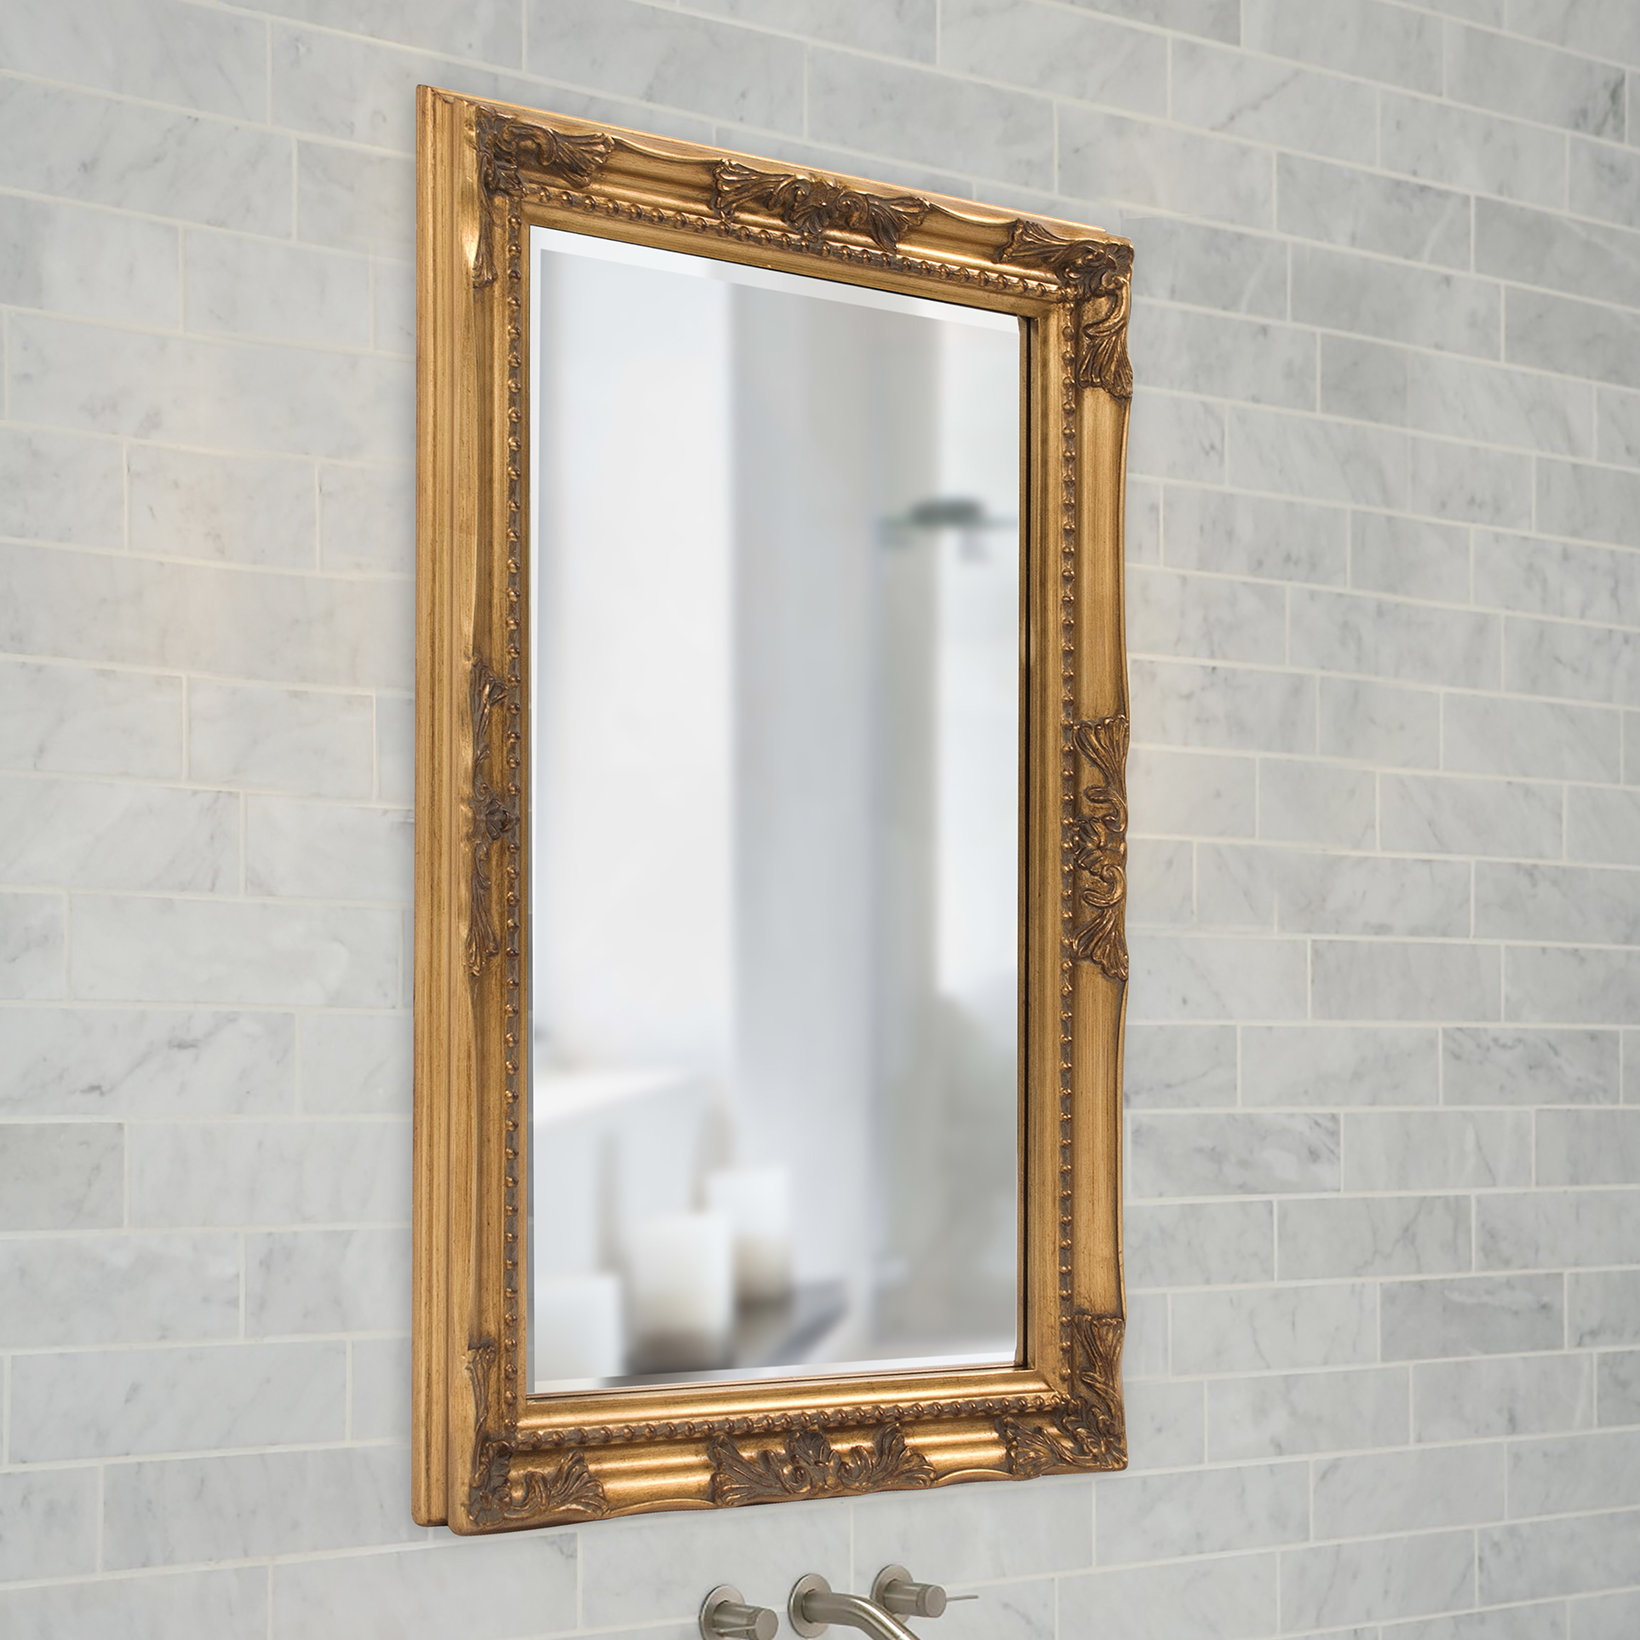 Traditional Beveled Accent Mirror Throughout Traditional Beveled Accent Mirrors (View 3 of 30)